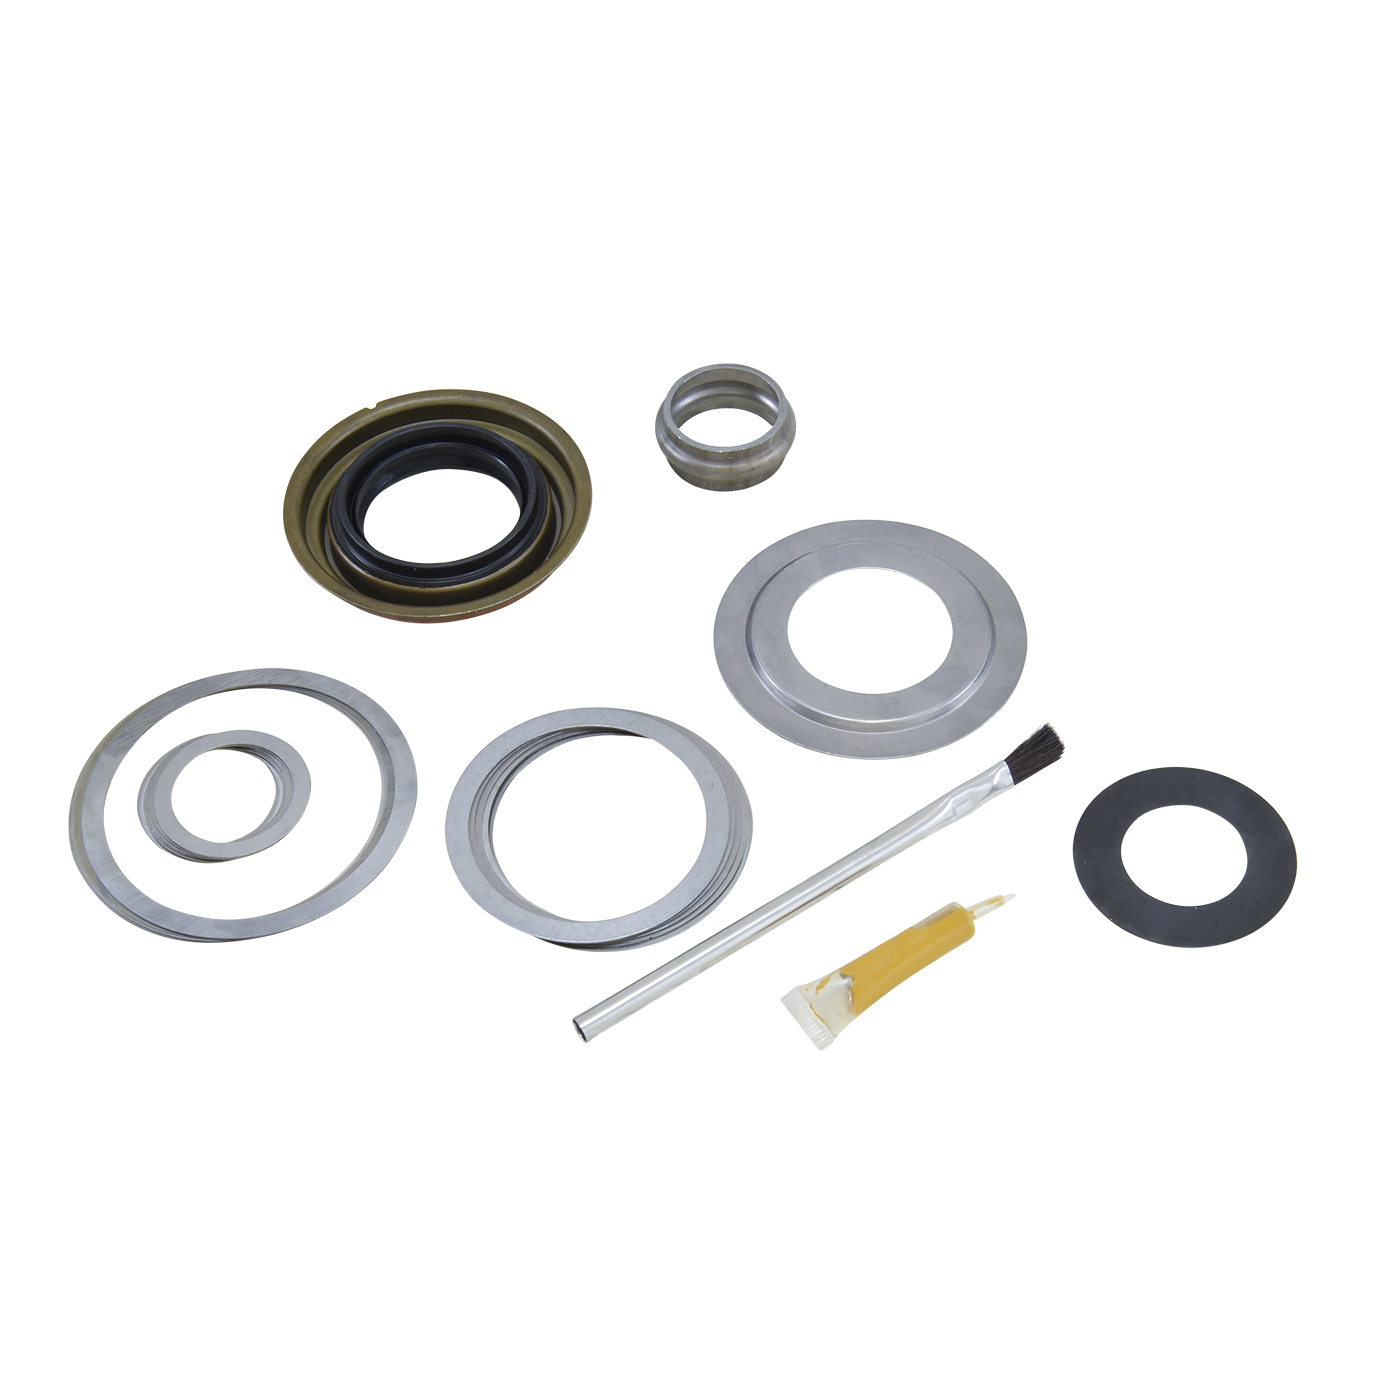 MK D60-R - Yukon Minor install kit for Dana 60 and 61 differential